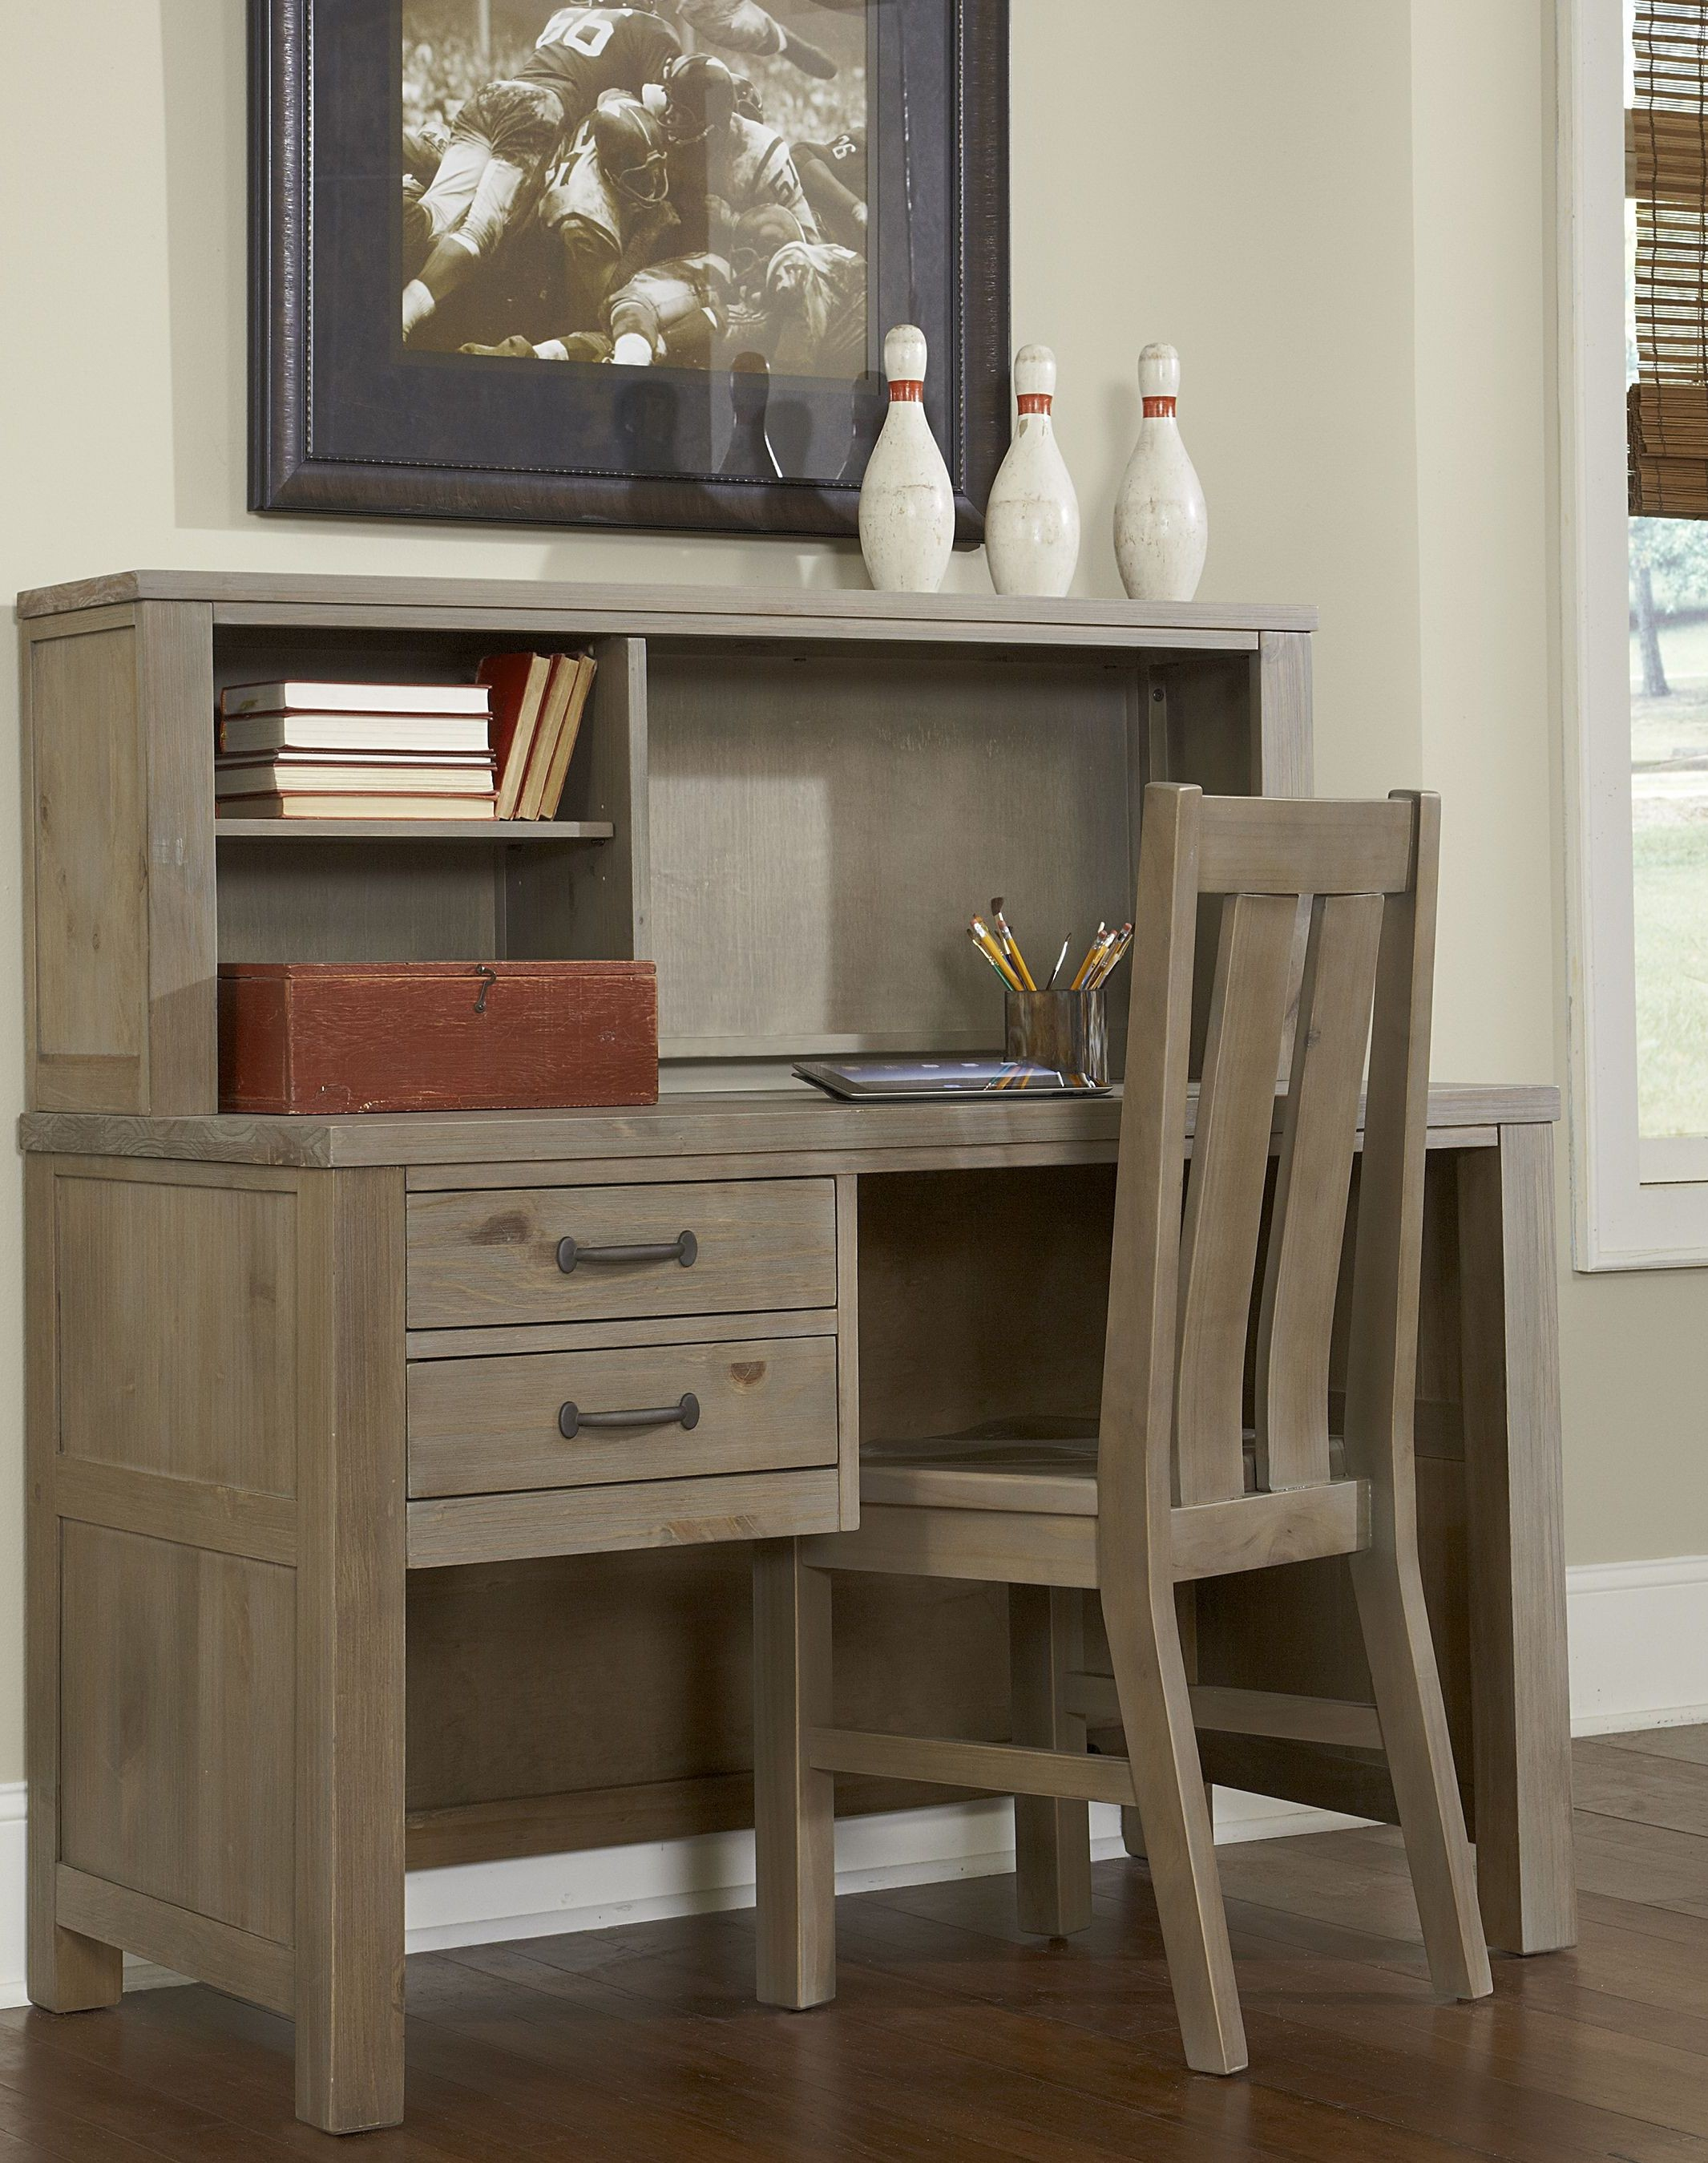 highlands driftwood desk with hutch and chair from ne kids coleman furniture. Black Bedroom Furniture Sets. Home Design Ideas